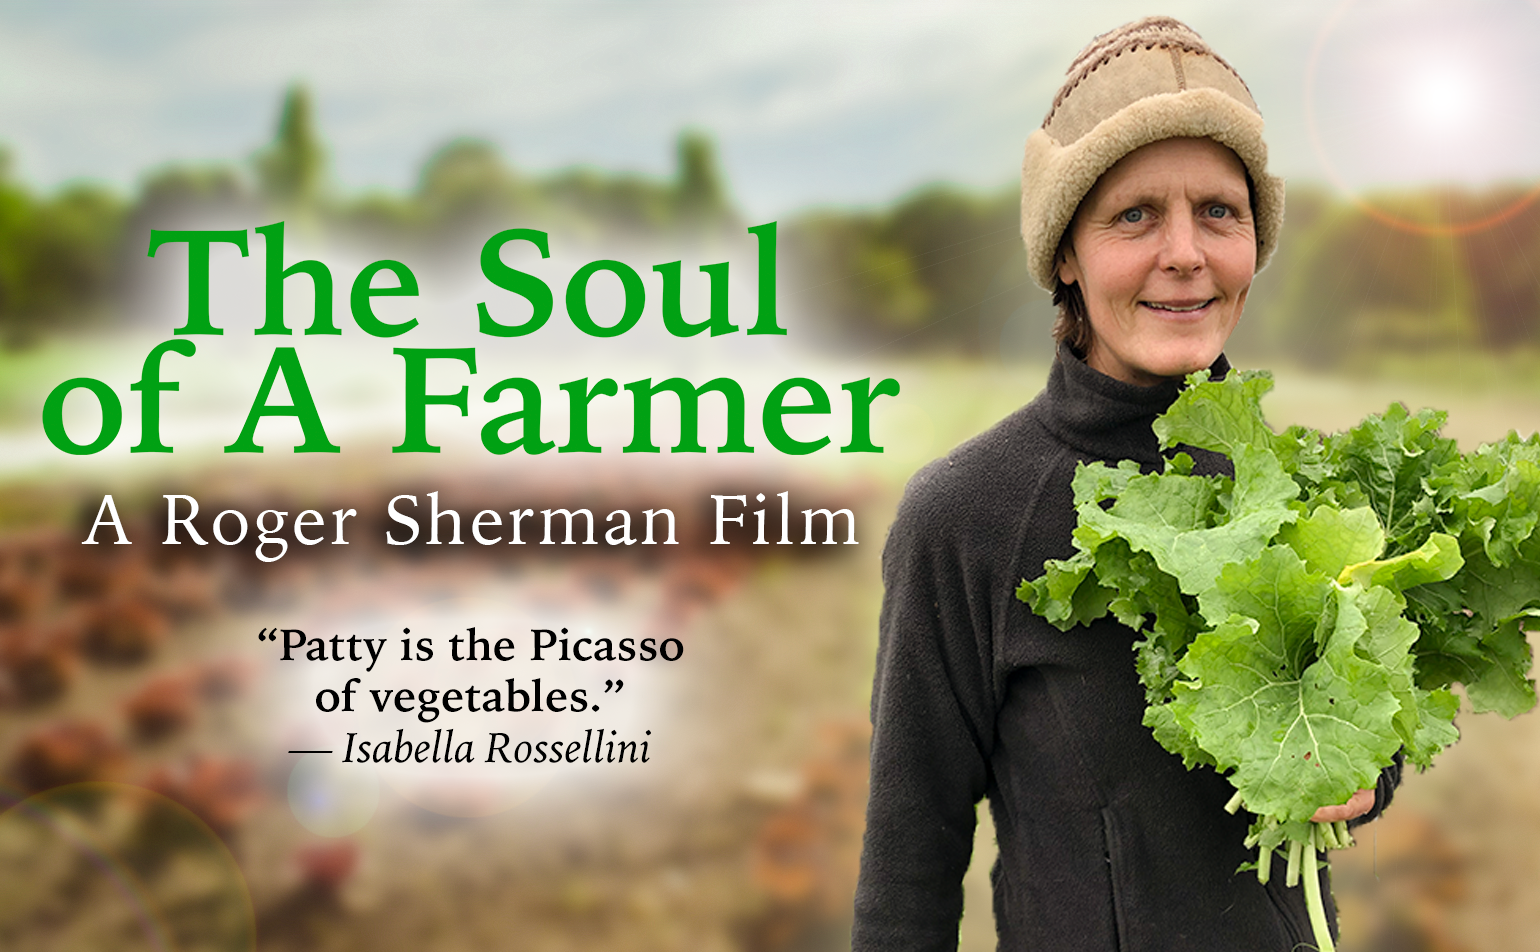 Website poster of Patty Genter, star of The Soul of A Farmer